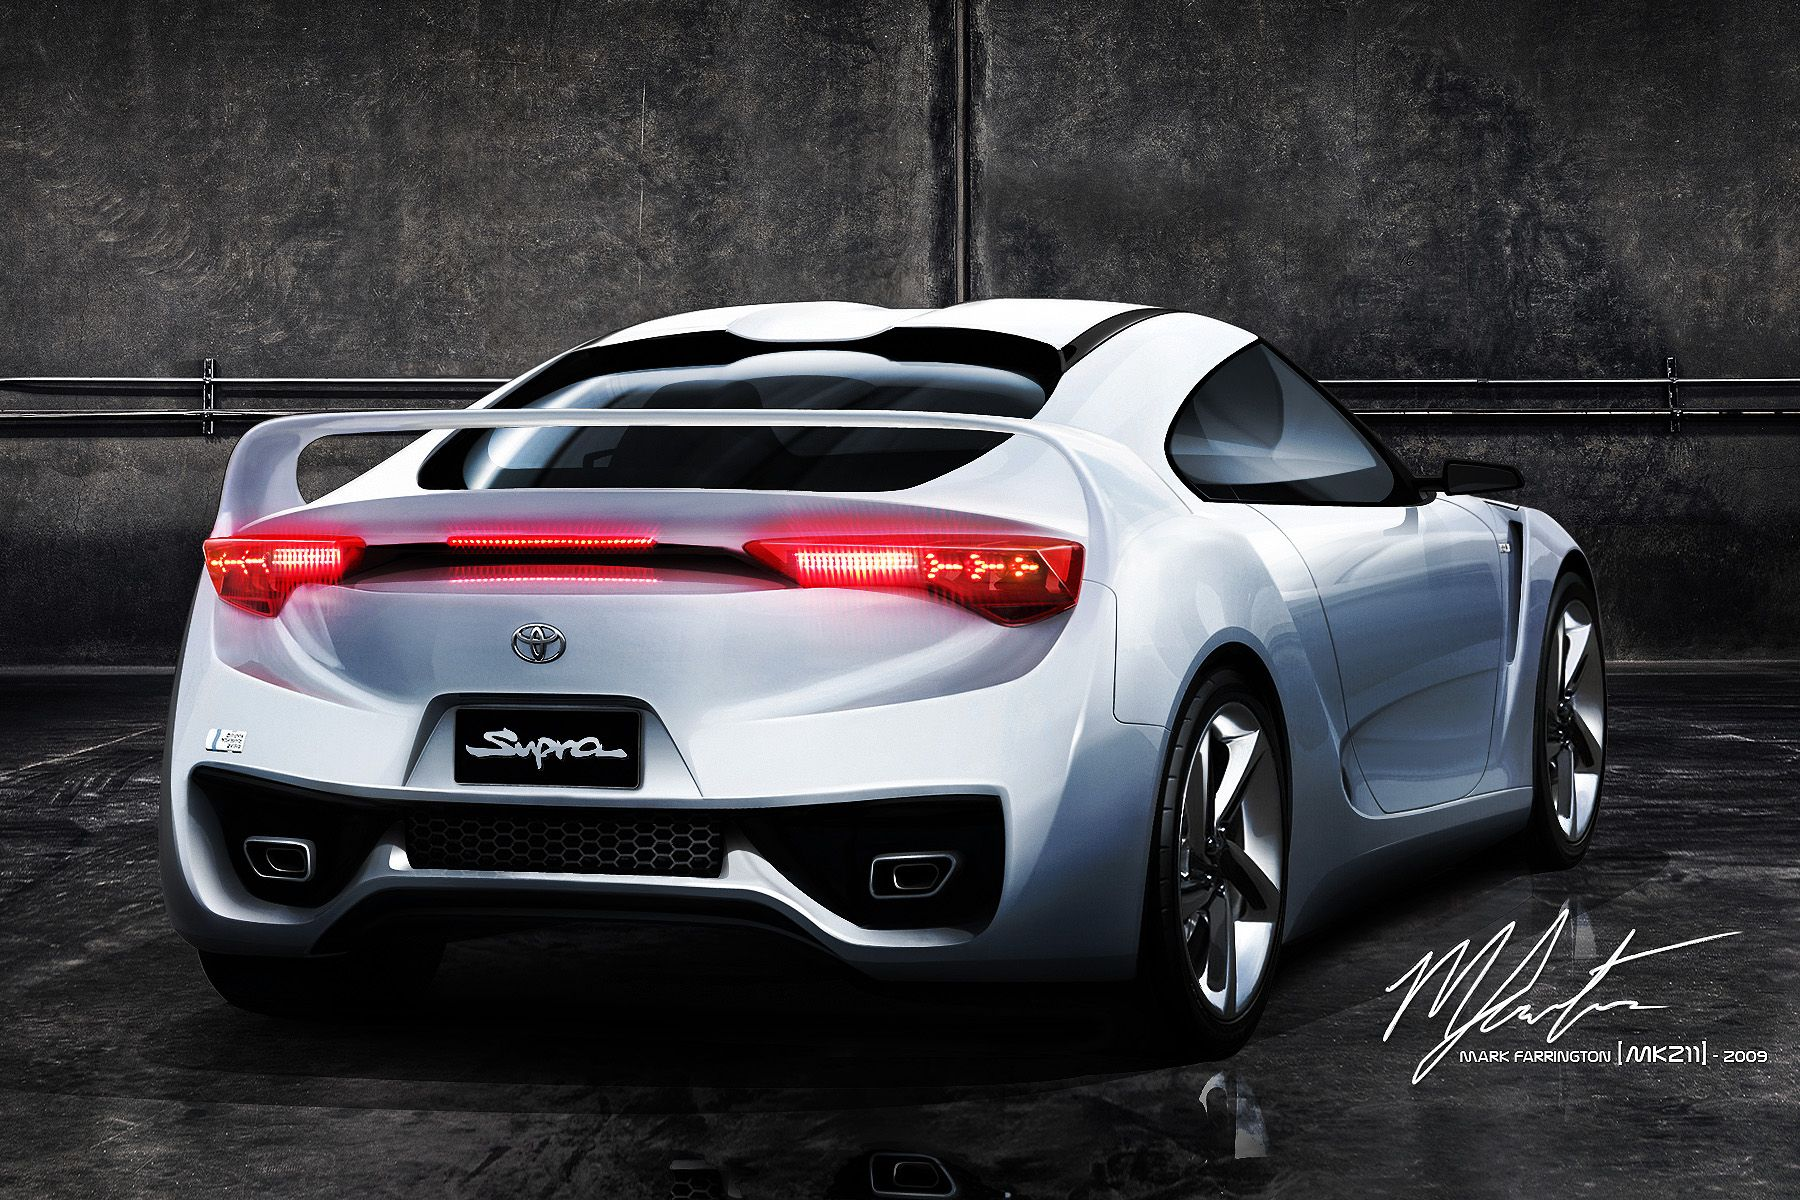 Exceptionnel The Rear View To Complement The First View I Did Of This Concept. (Rear  View Based On Toyota FT HS Concept) Base : [link] Toyota Supra 2011 Concept